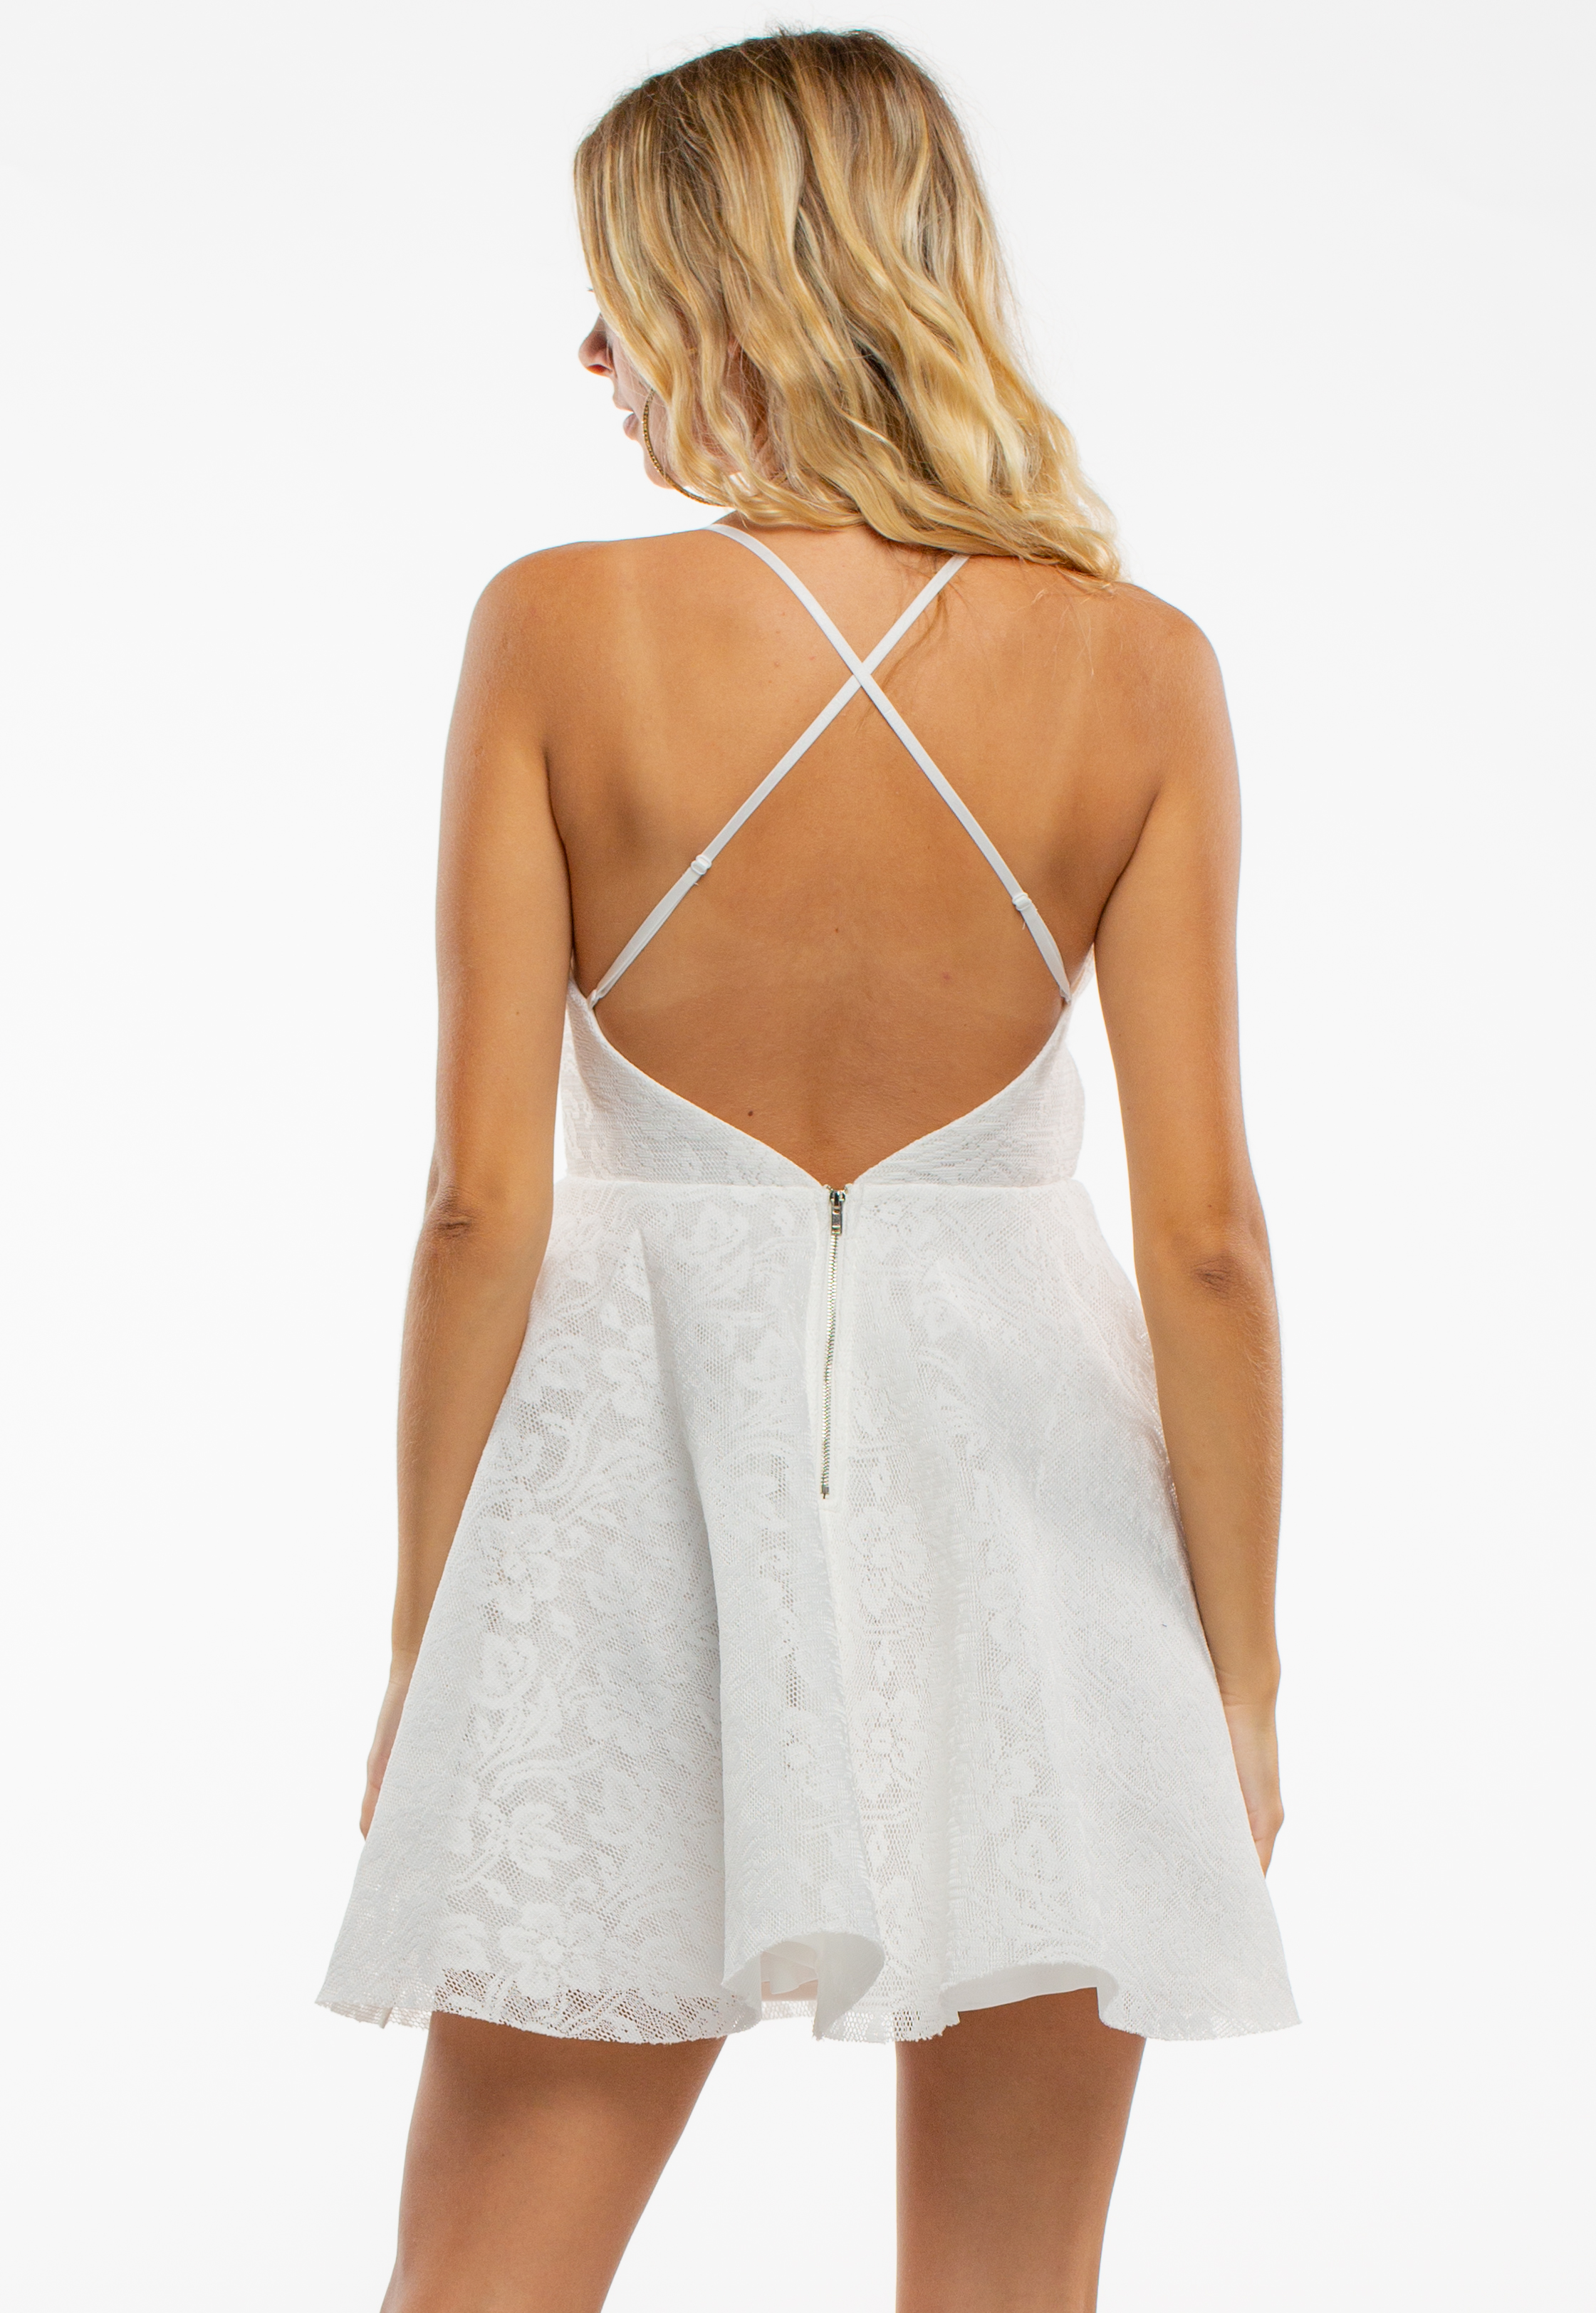 Floral Lace Flare Mini Dress With Cross Back